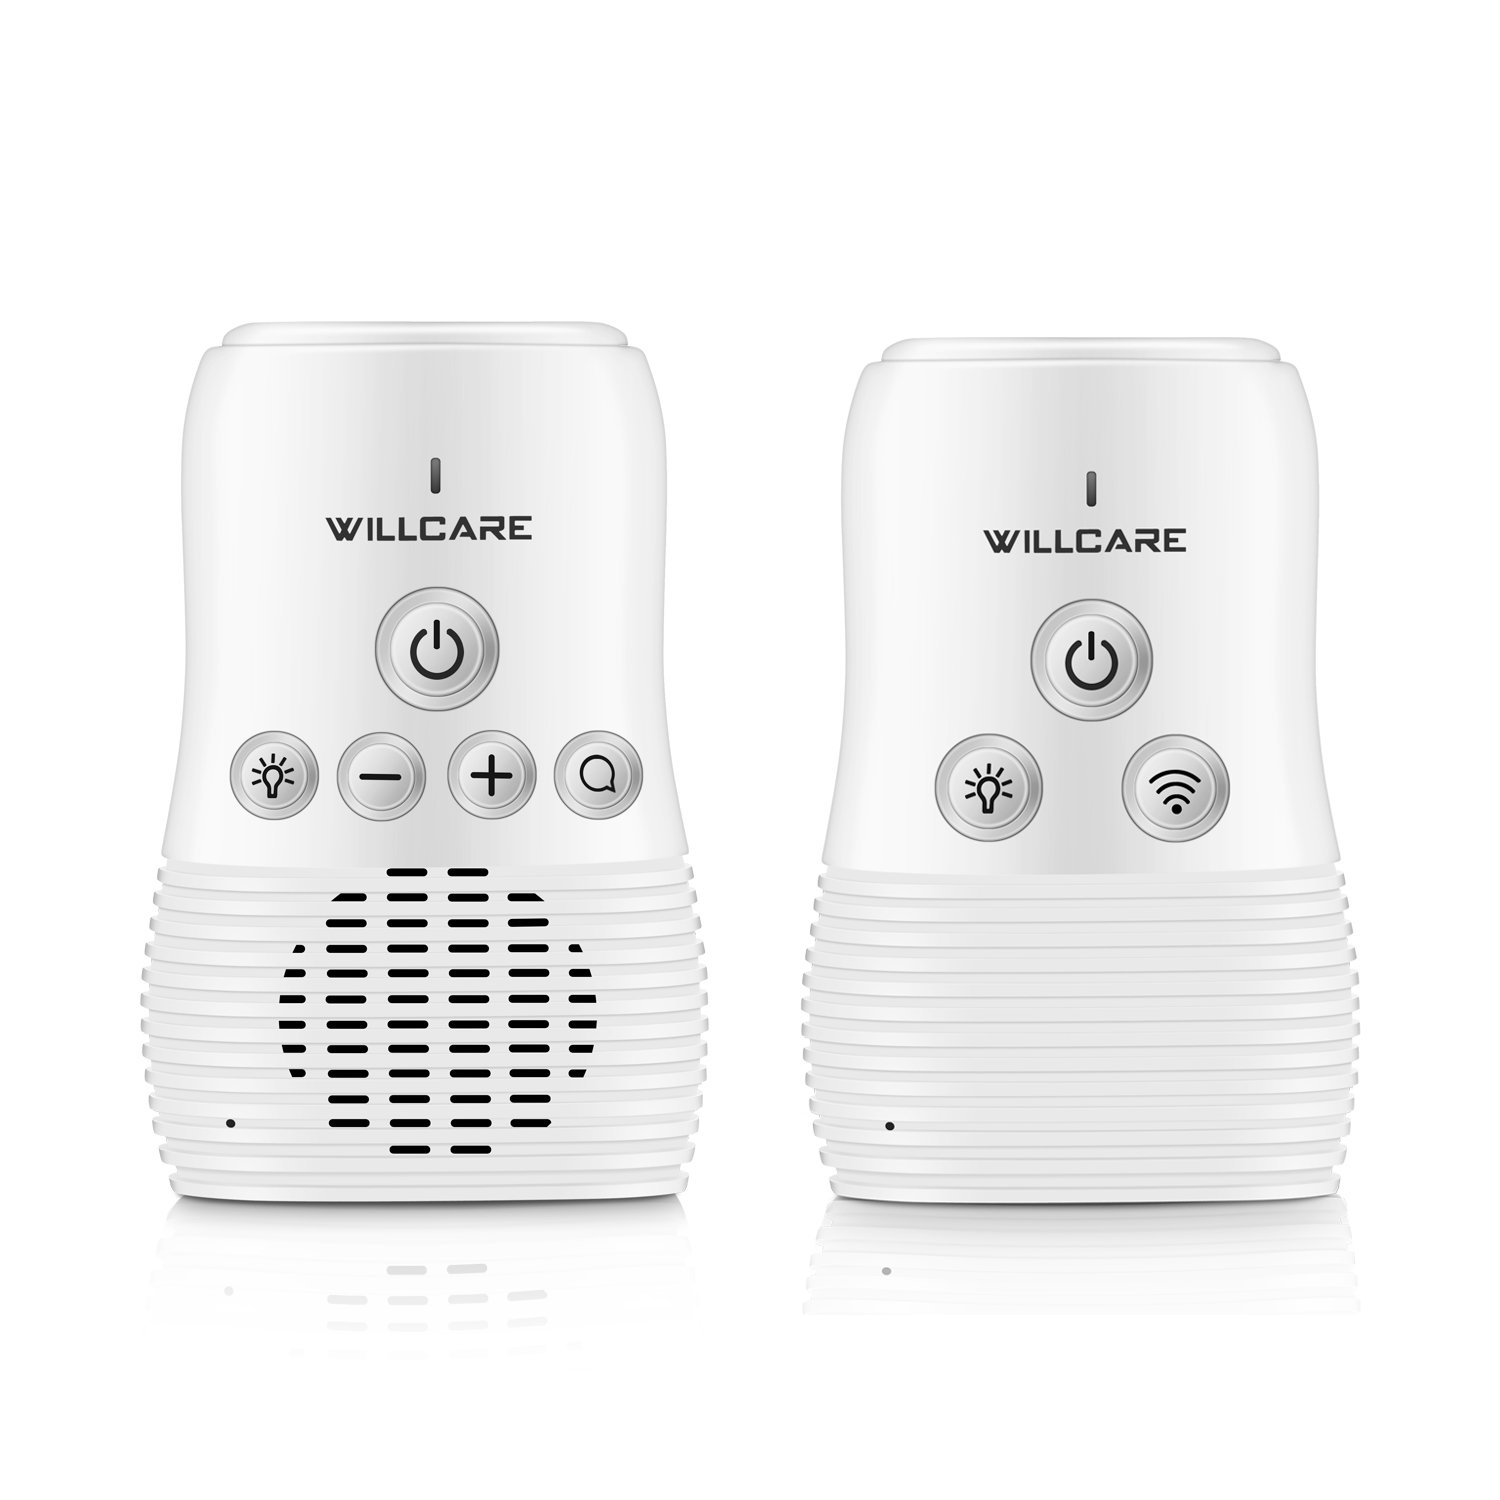 Willcare Upgraded Baby Monitor with Two-Way Audio, Smooth Night Light, Rechargeable Battery Operated Parent Unit & Long Range. (DBM-8, White) DBM-8WH2.1